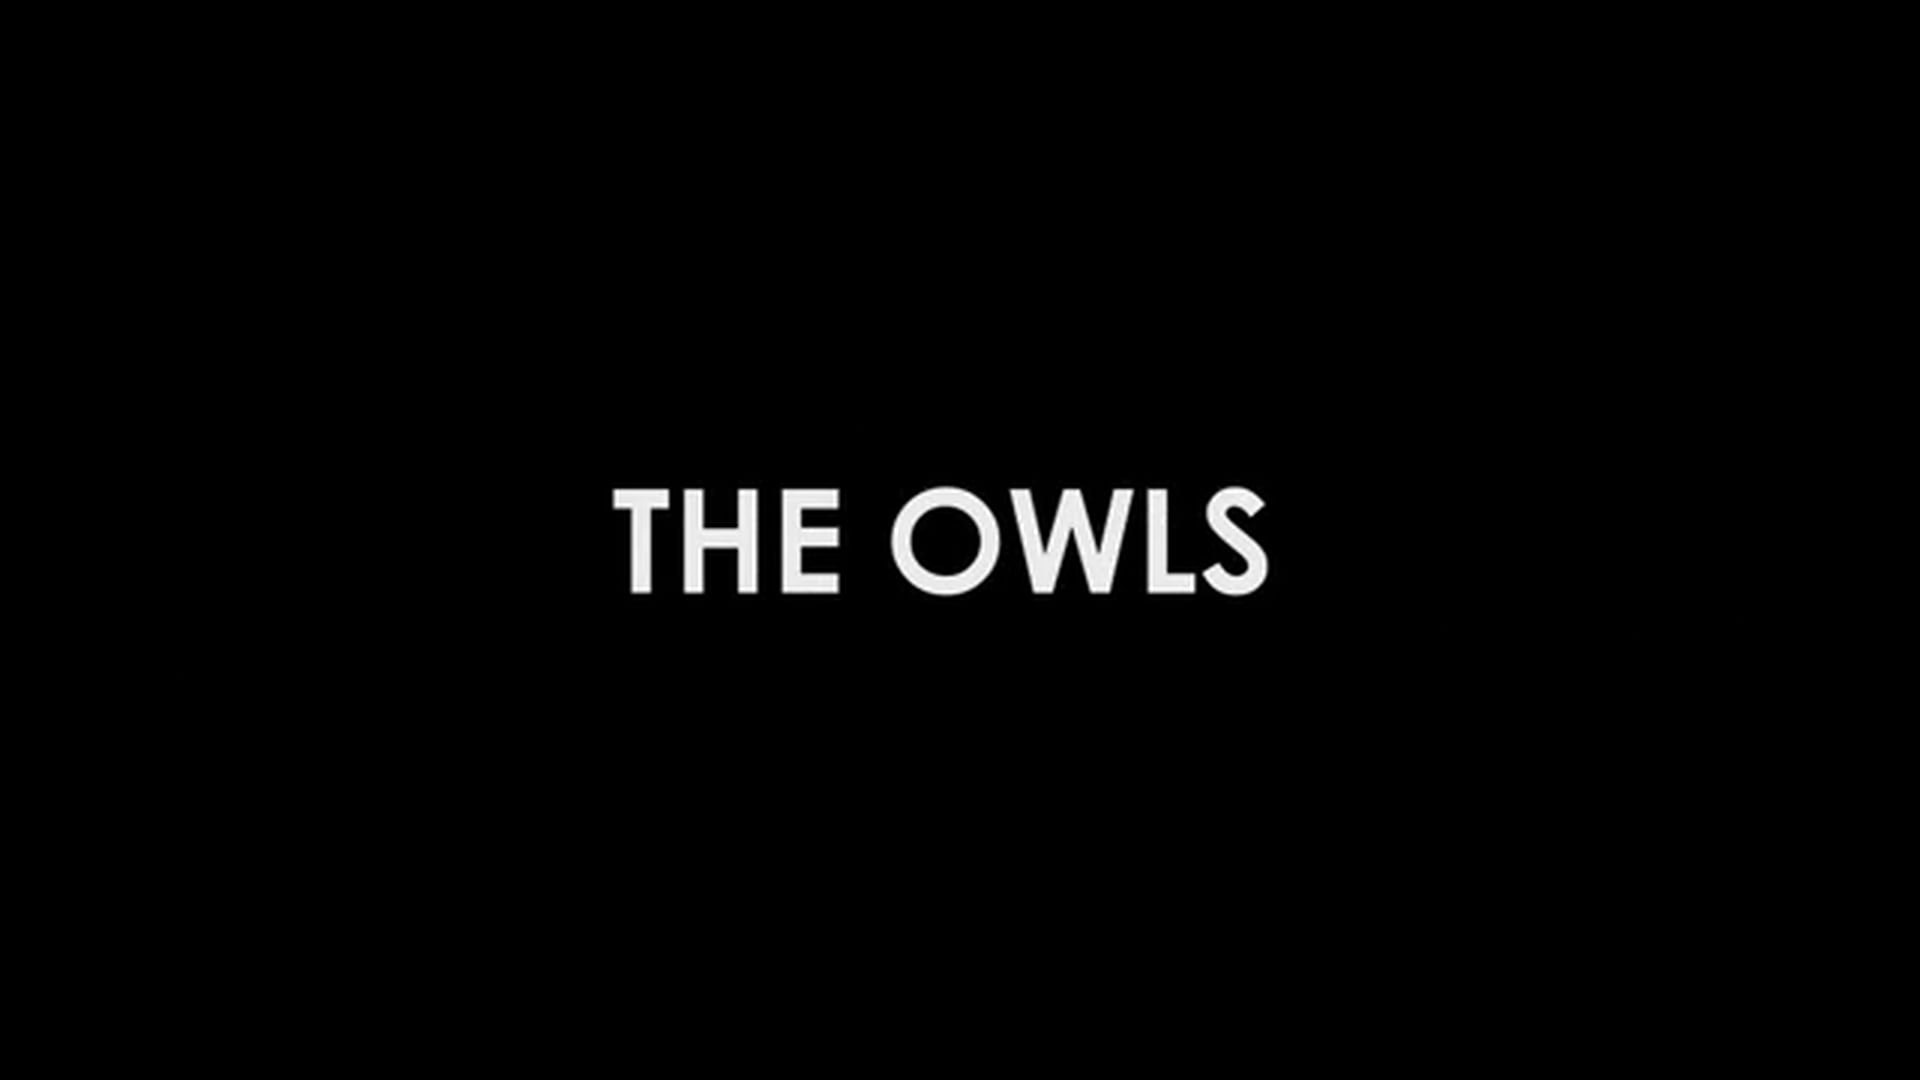 The Owls (2010) - Final Edited Master Trailer_H264.mov